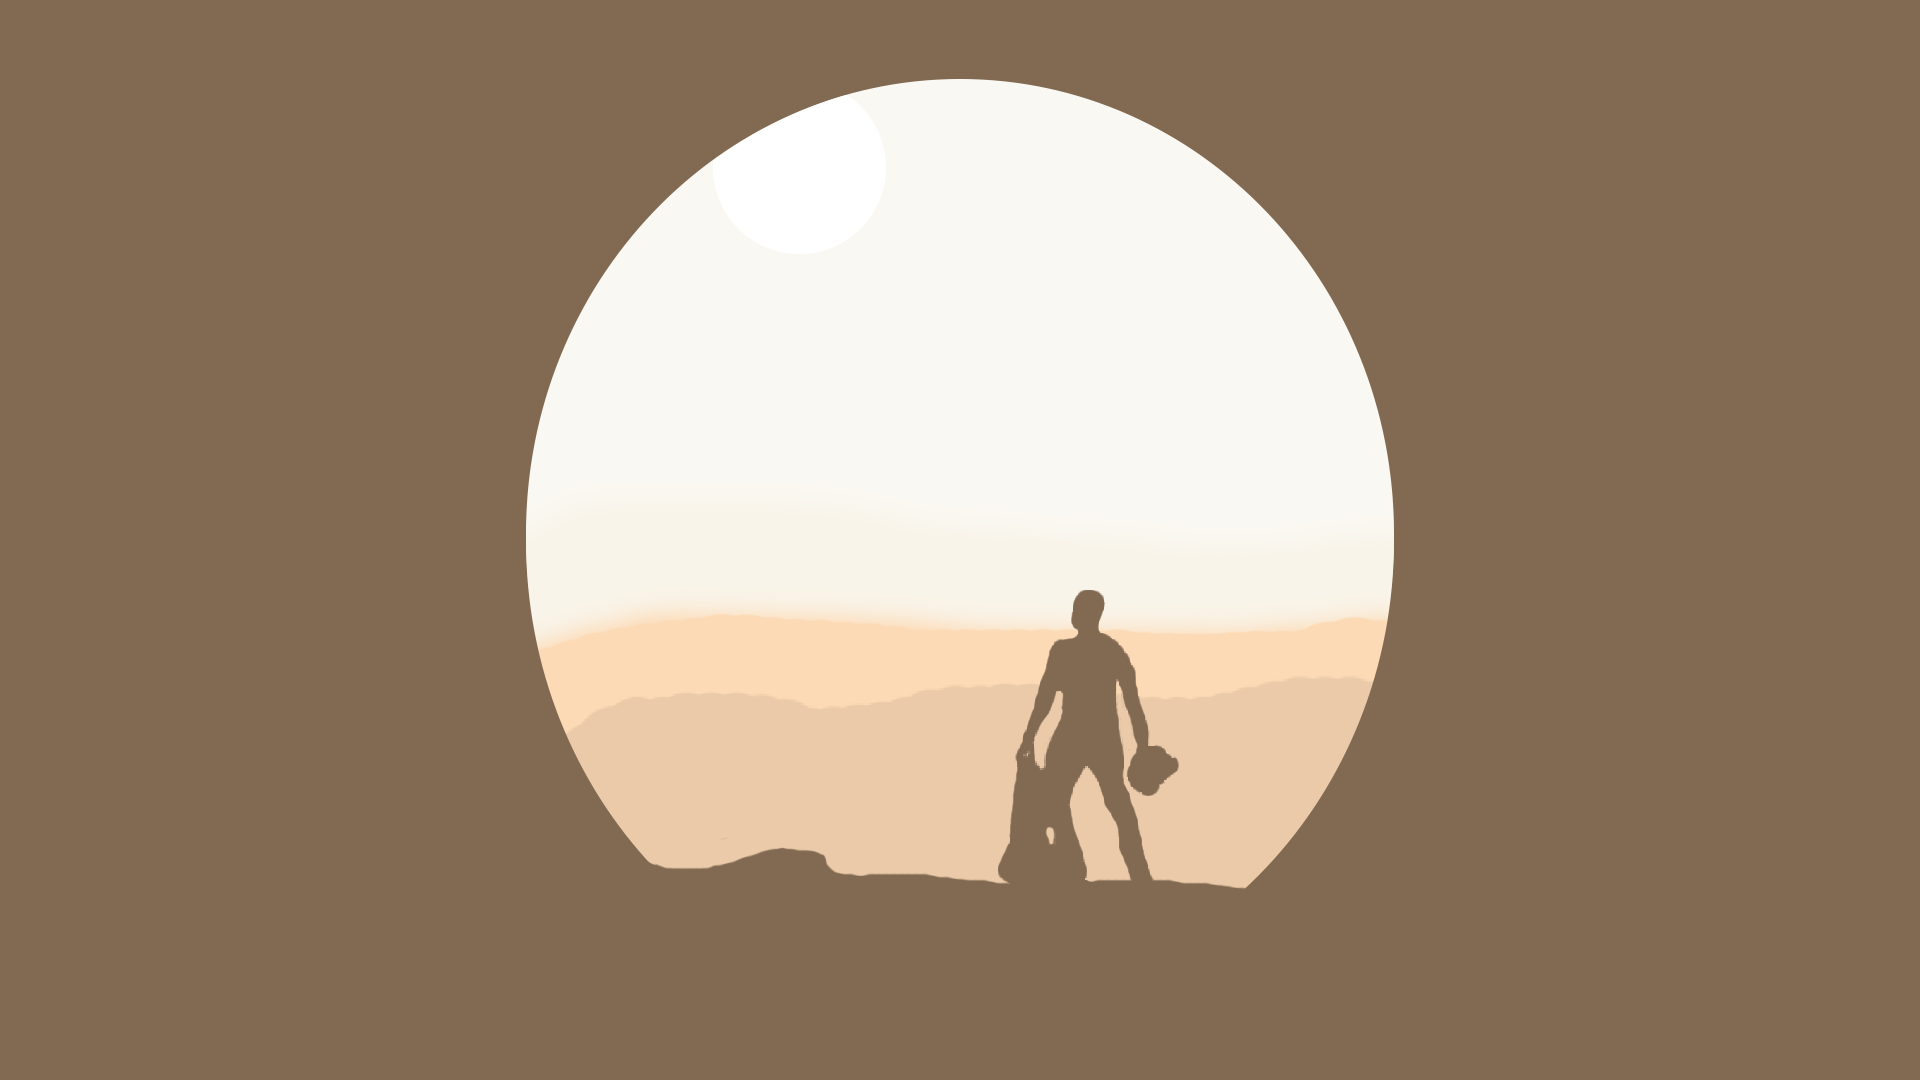 Minimalist Clock Designer Star Wars Wallpapers Collection